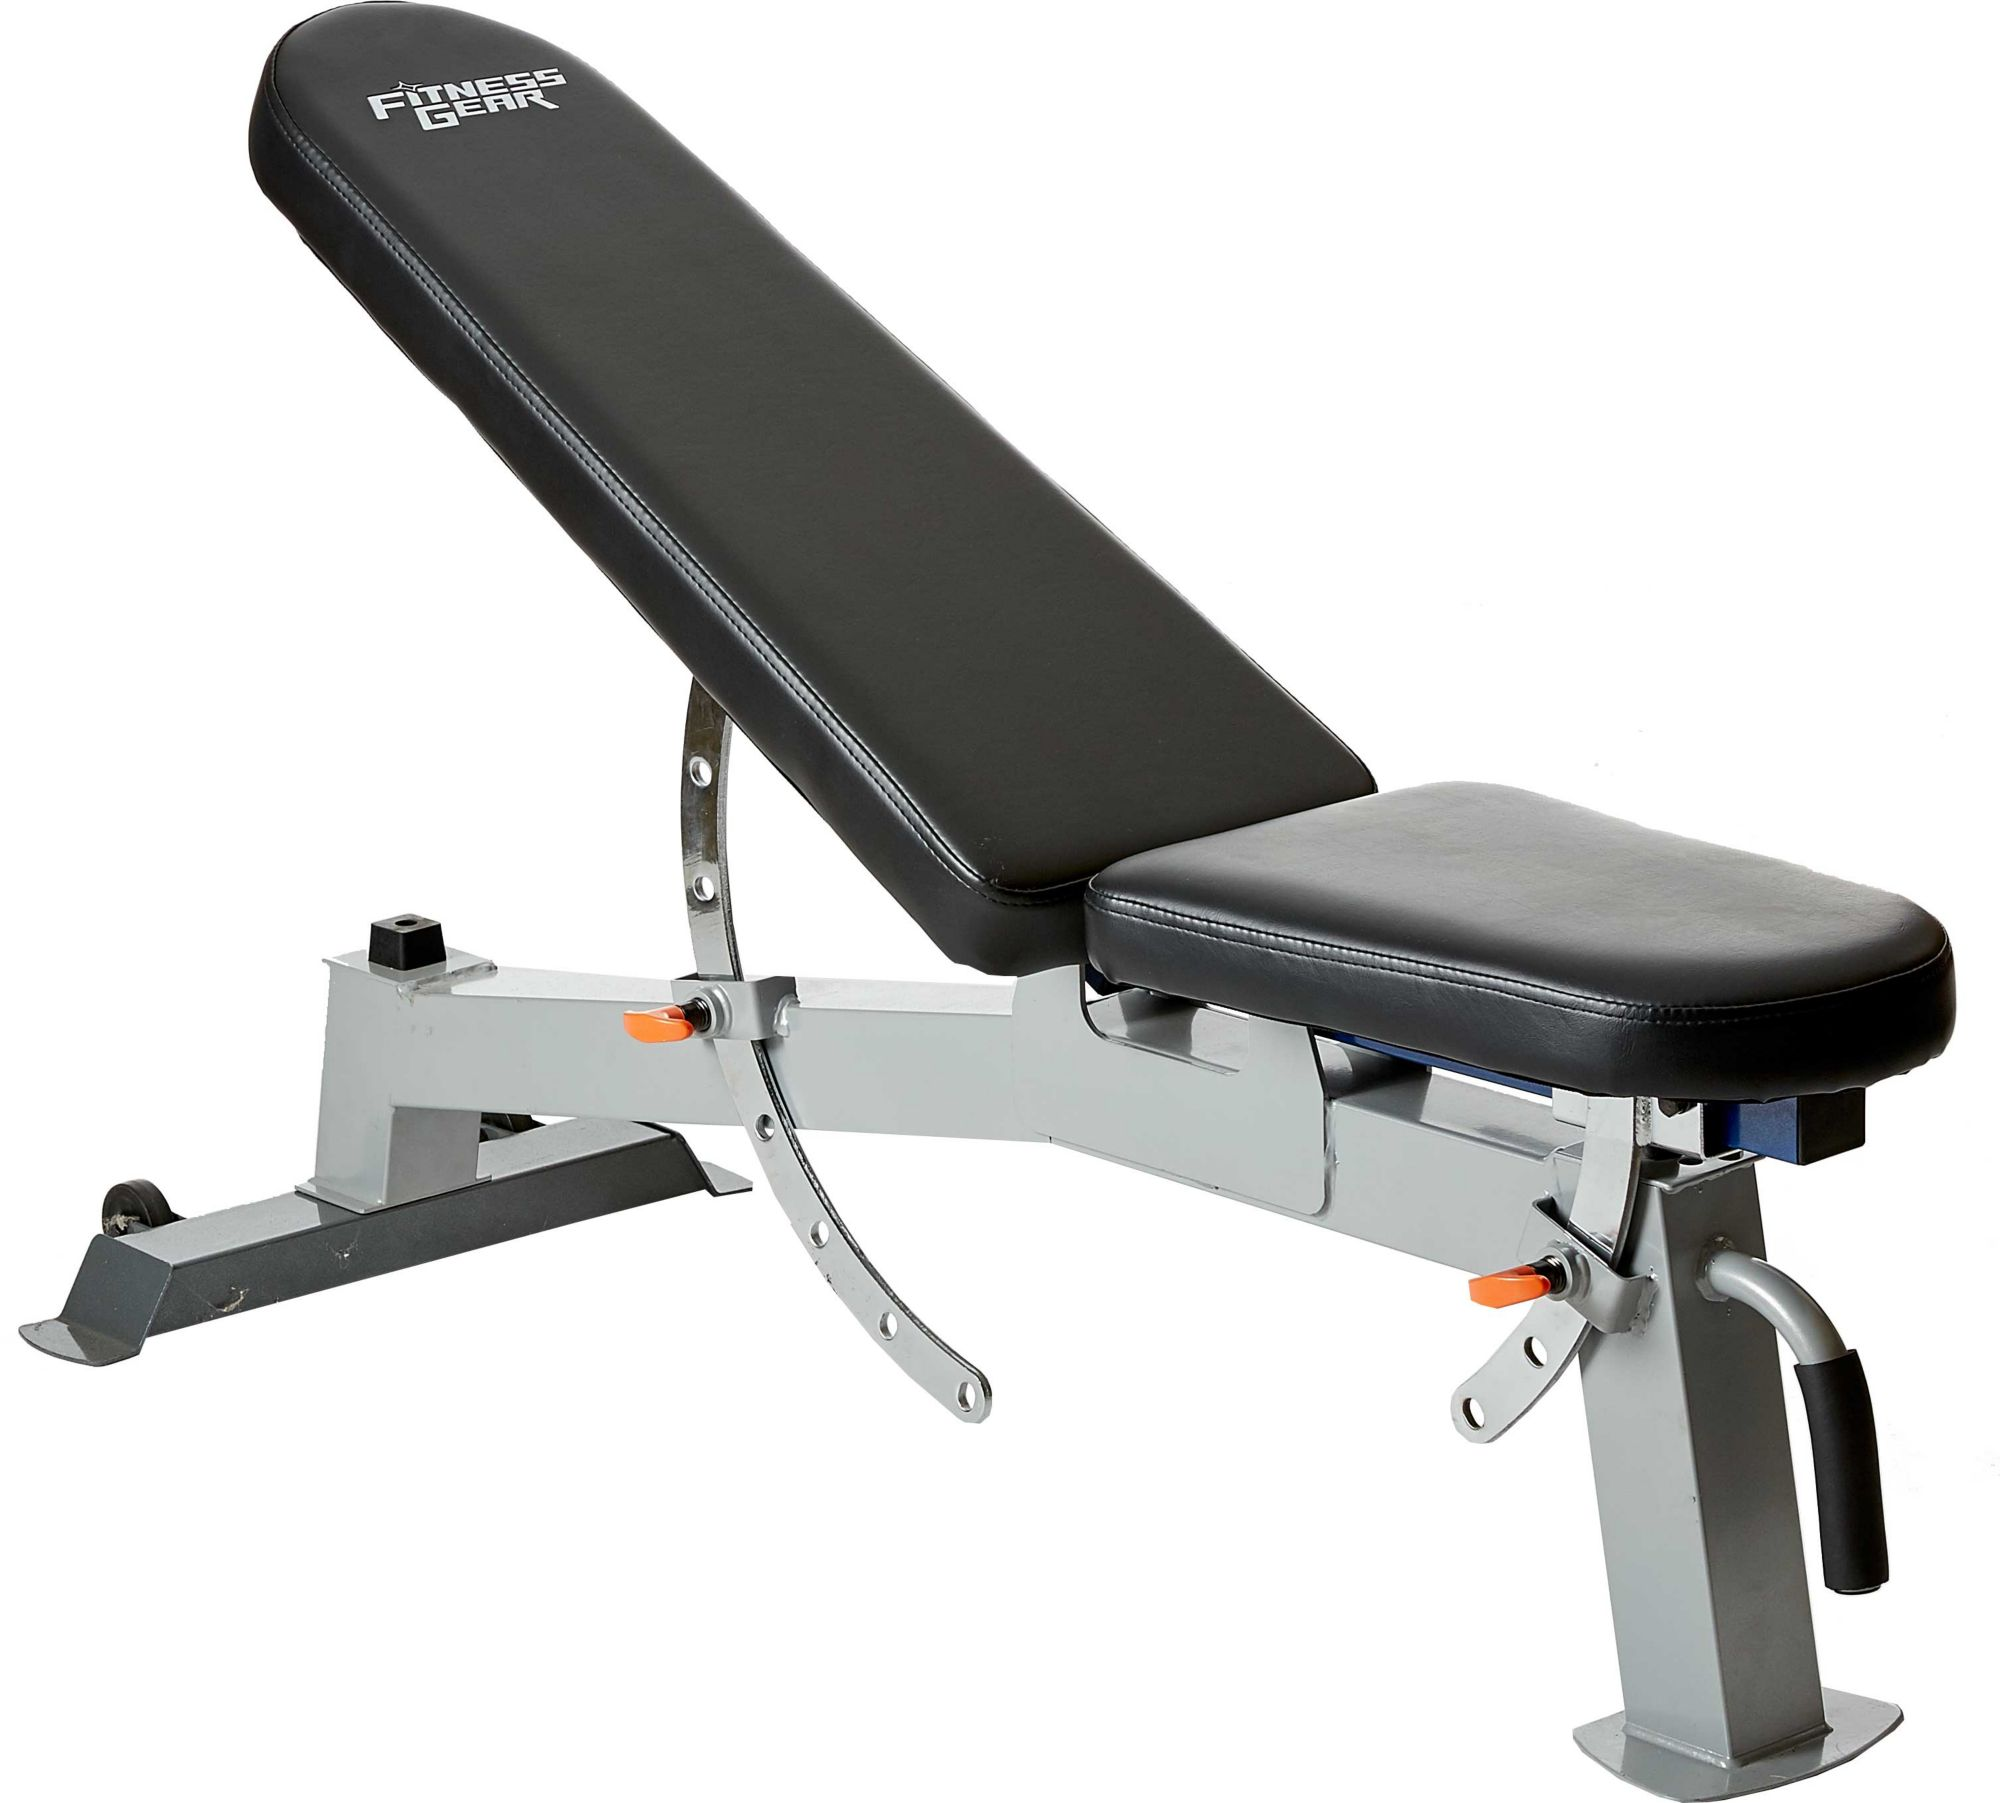 Free Weights On Bench: Fitness Gear Pro Utility Weight Bench